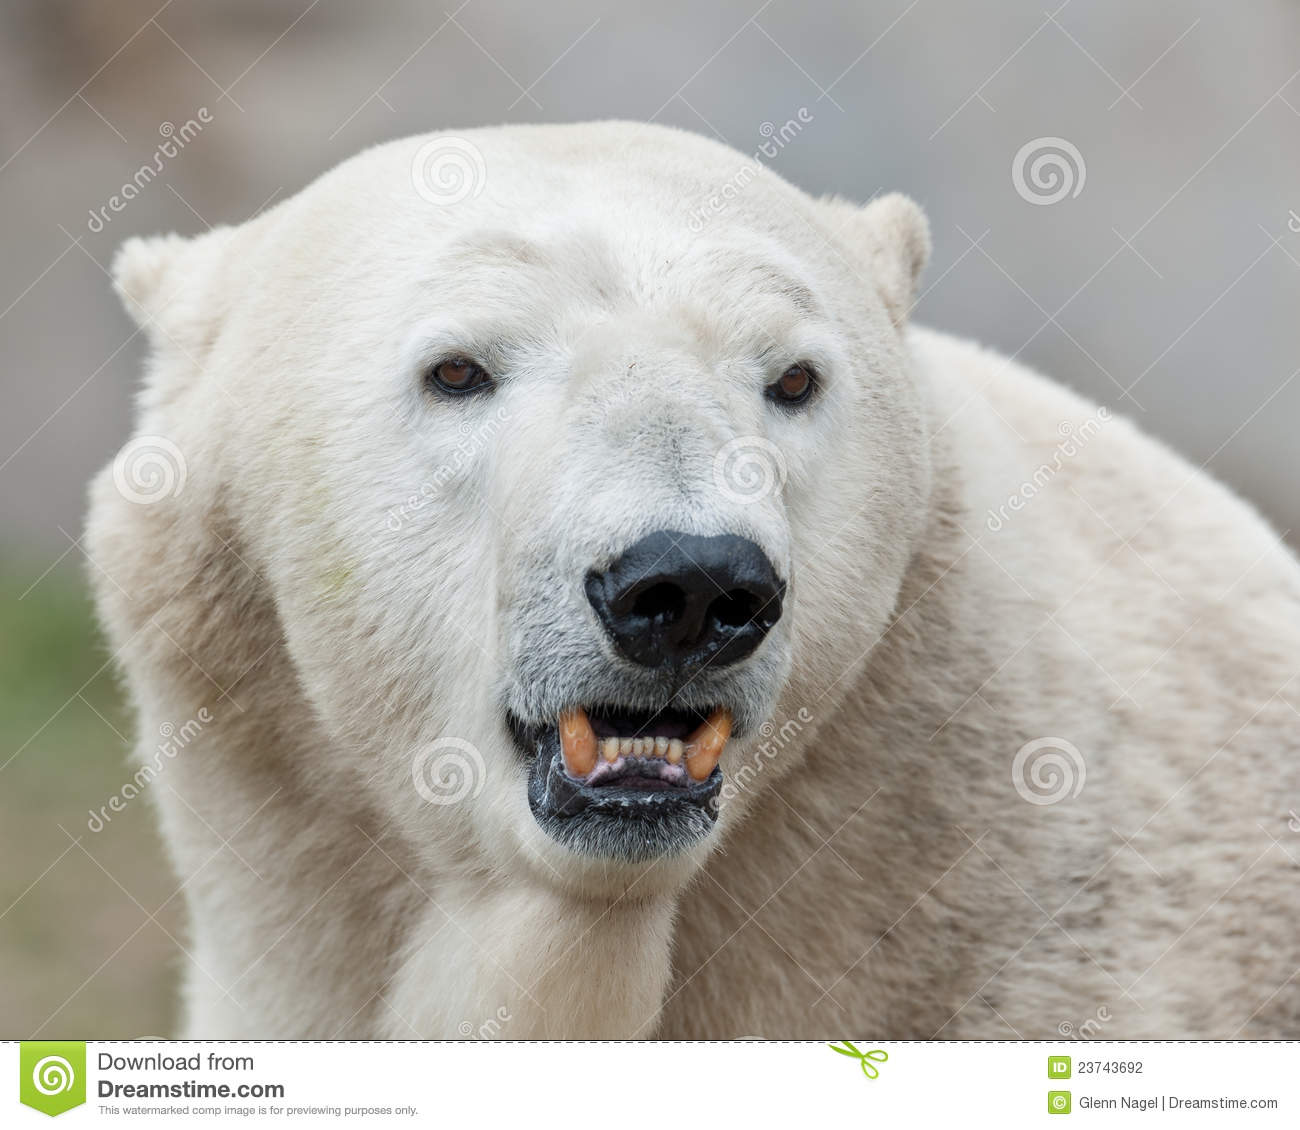 Polar Bear Shows Teeth Stock Photography - Image: 23743692